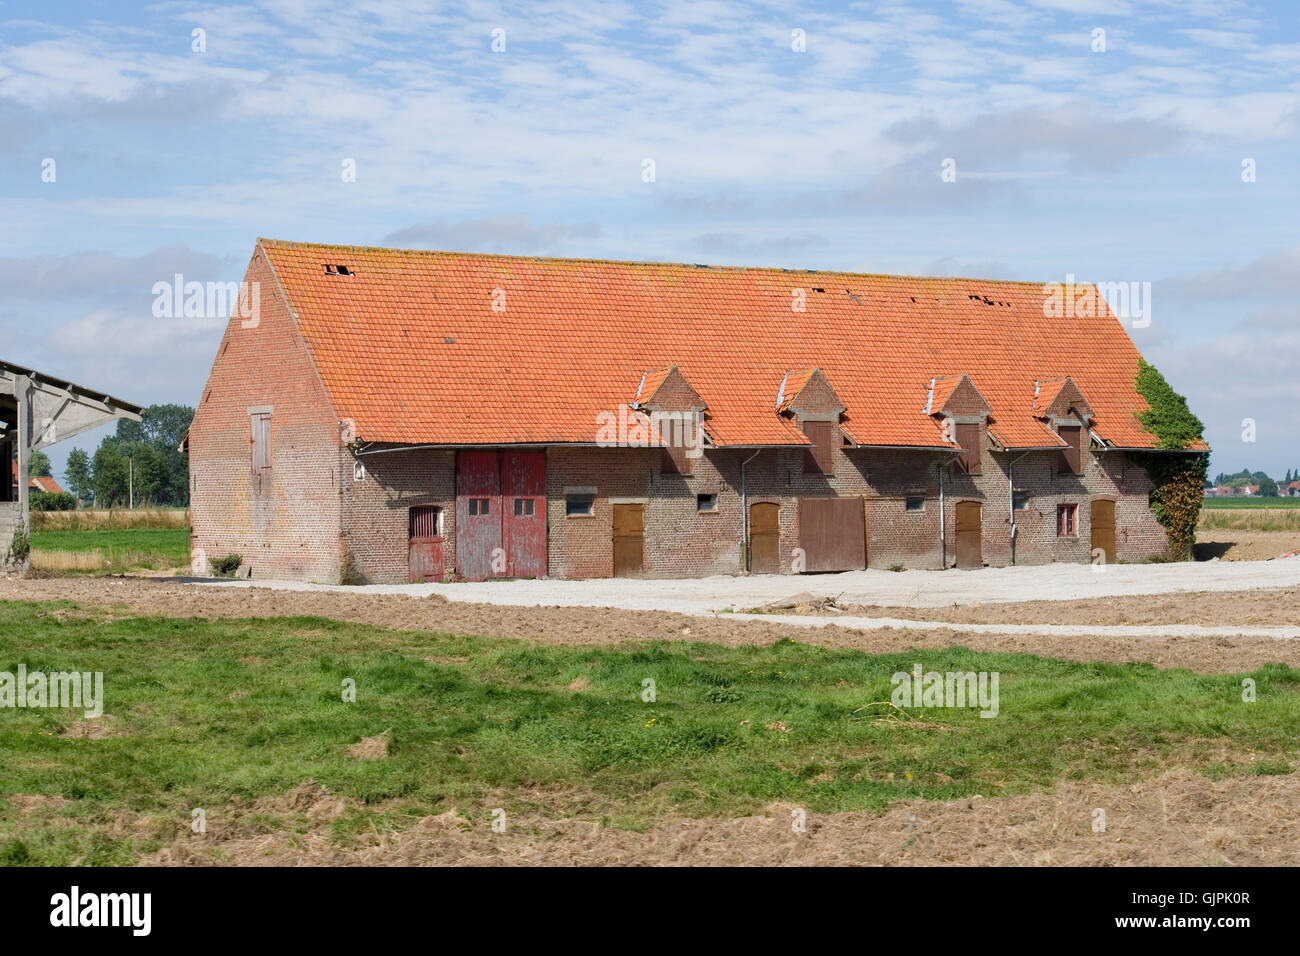 belgian cattle shed, original style - Stock Image